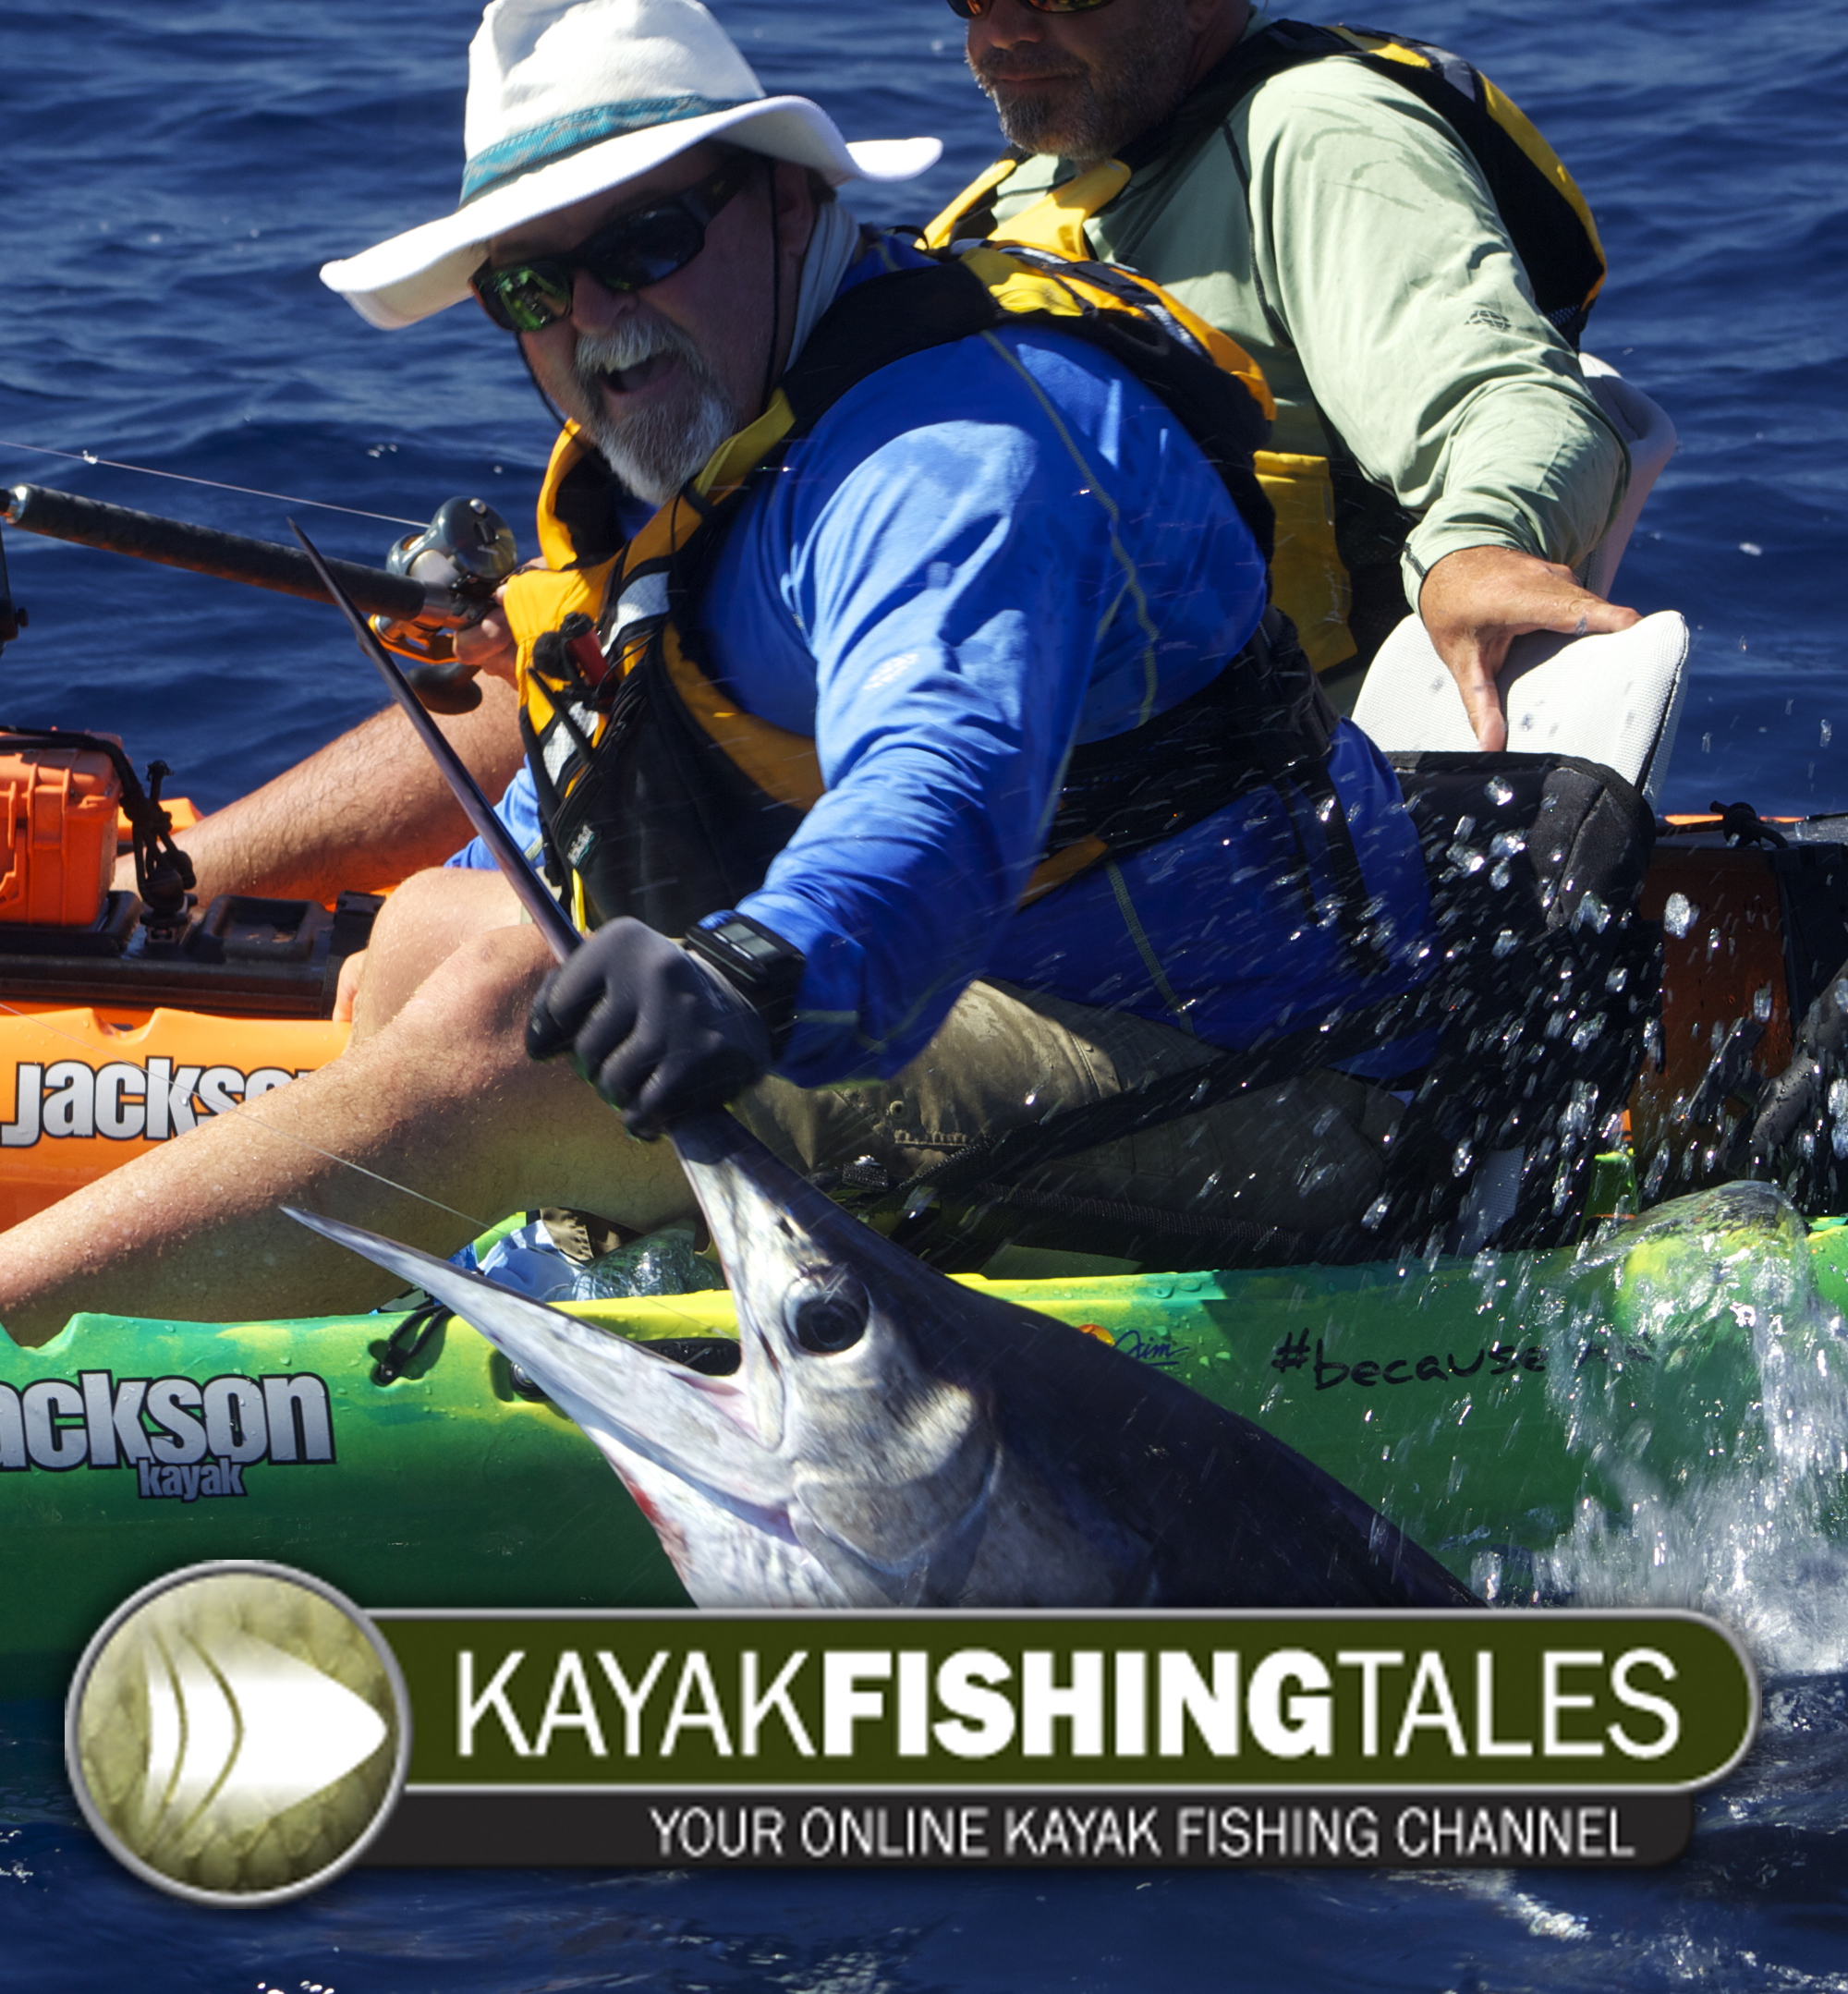 Kayak fishing tales youtube channel and newsletter both for Youtube kayak fishing